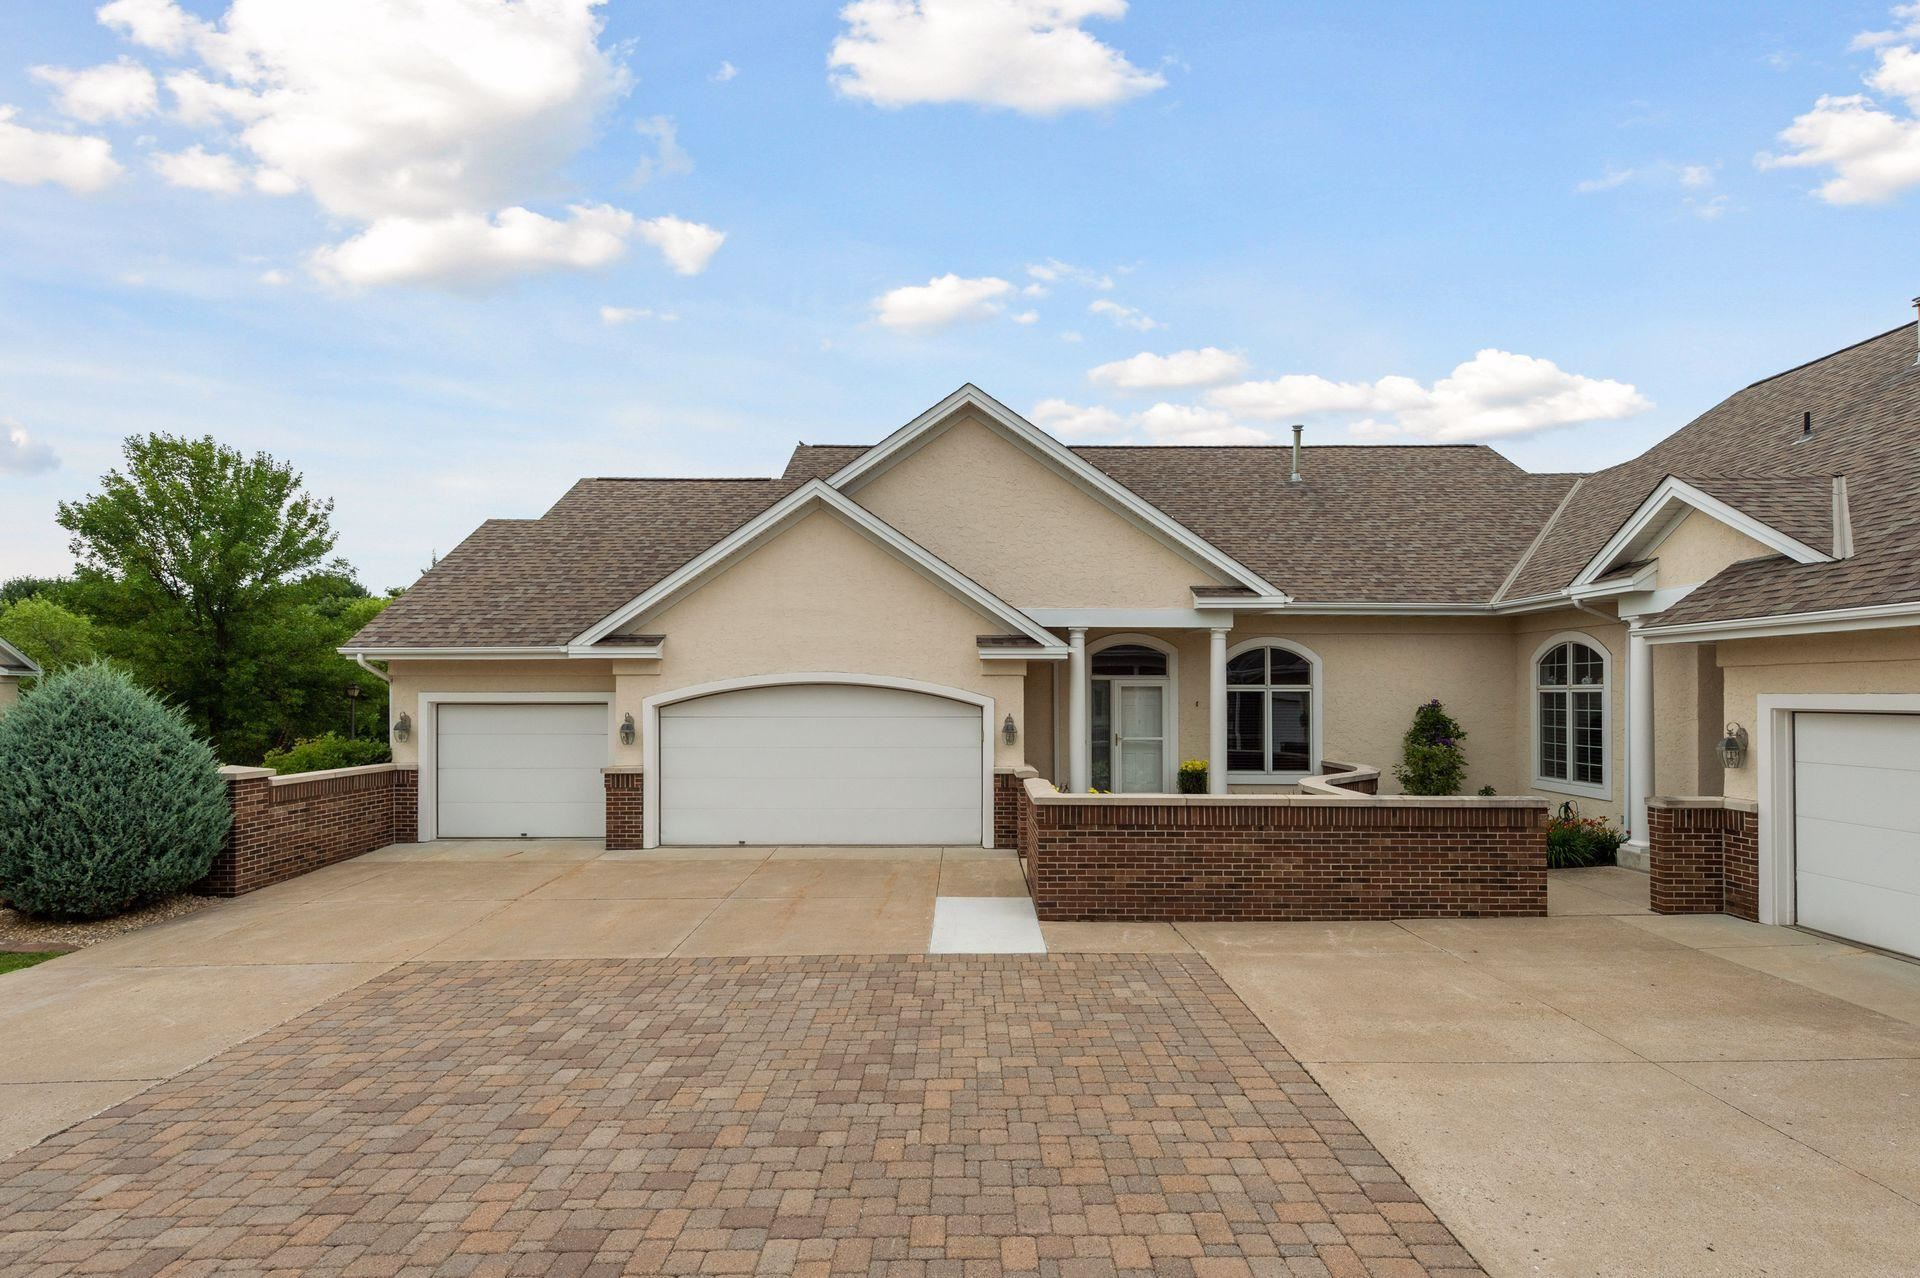 16705 49th Place N, Plymouth, MN 55446 - #: 5485944